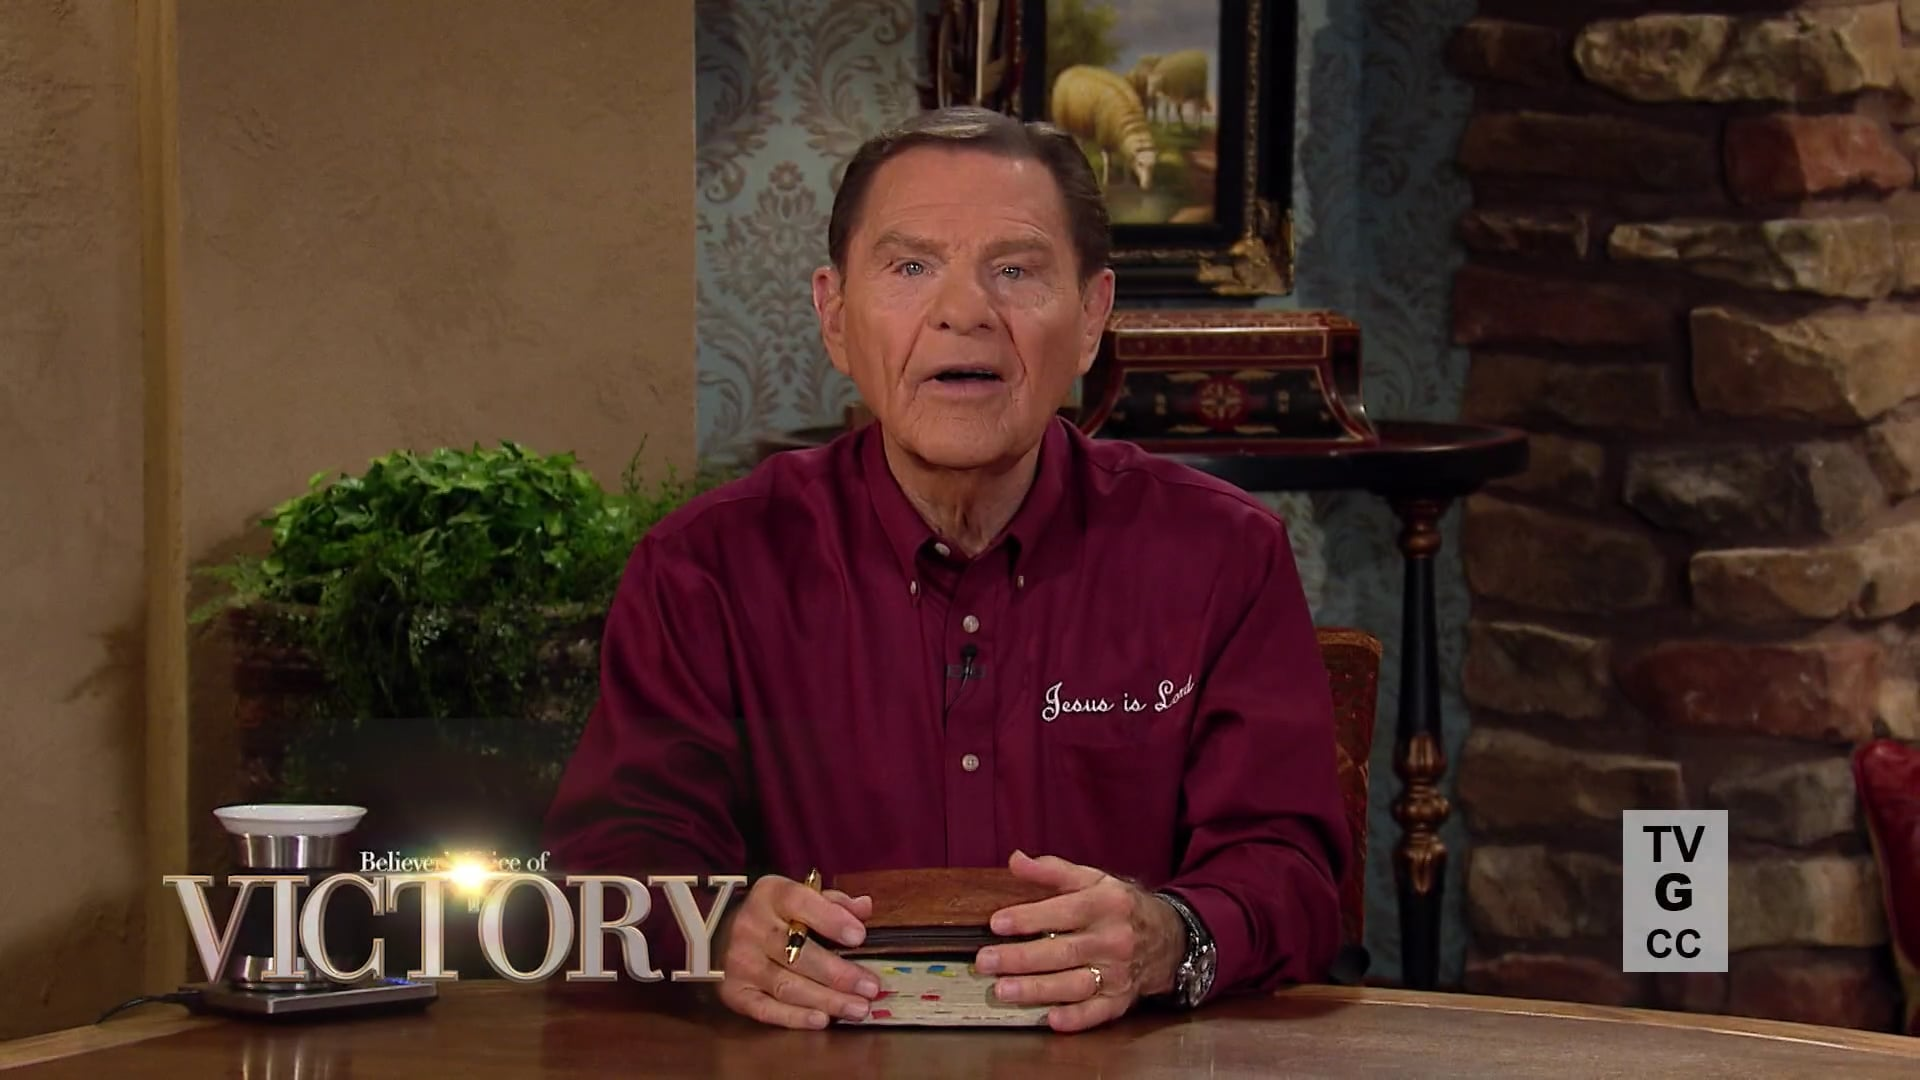 Defend your dreams against strife! Watch Kenneth Copeland on Believer's Voice of Victory as he shares why being argumentative or violating the law of love in any way will rob you of God's greatest BLESSINGS. See how strife is the killer of dreams, so you can steer clear!